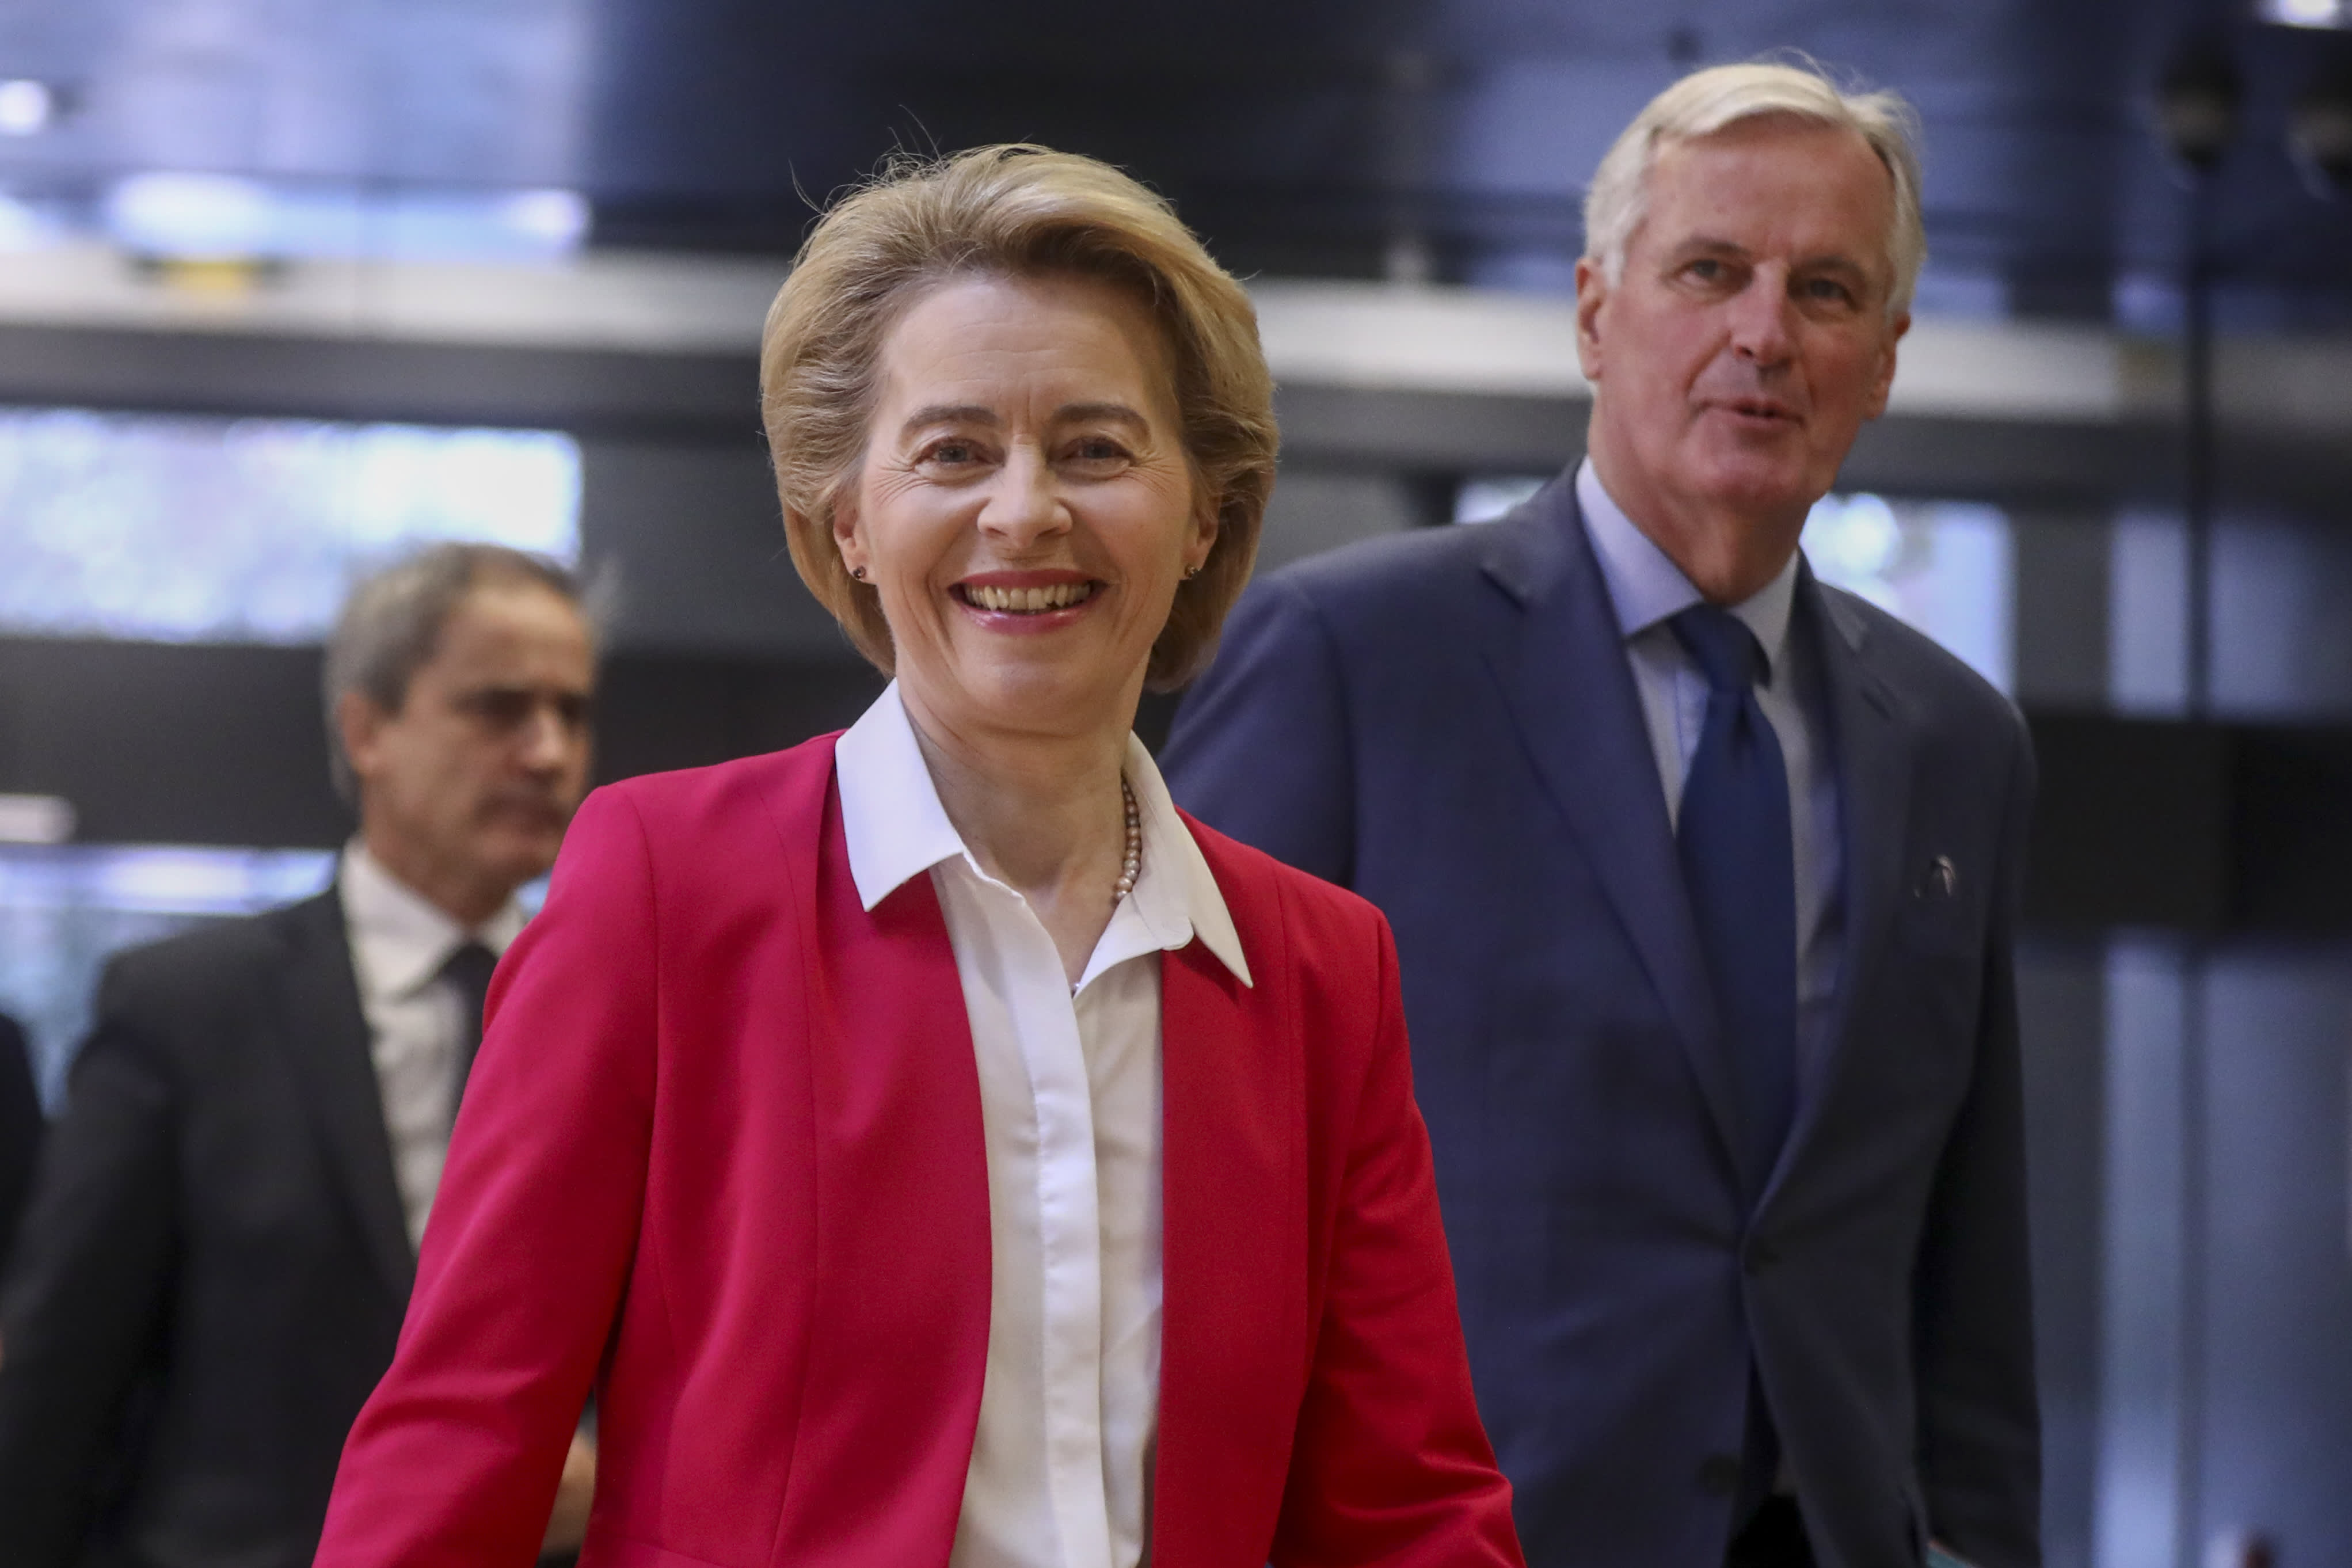 EU says its relationship with the UK will never be the same post-Brexit